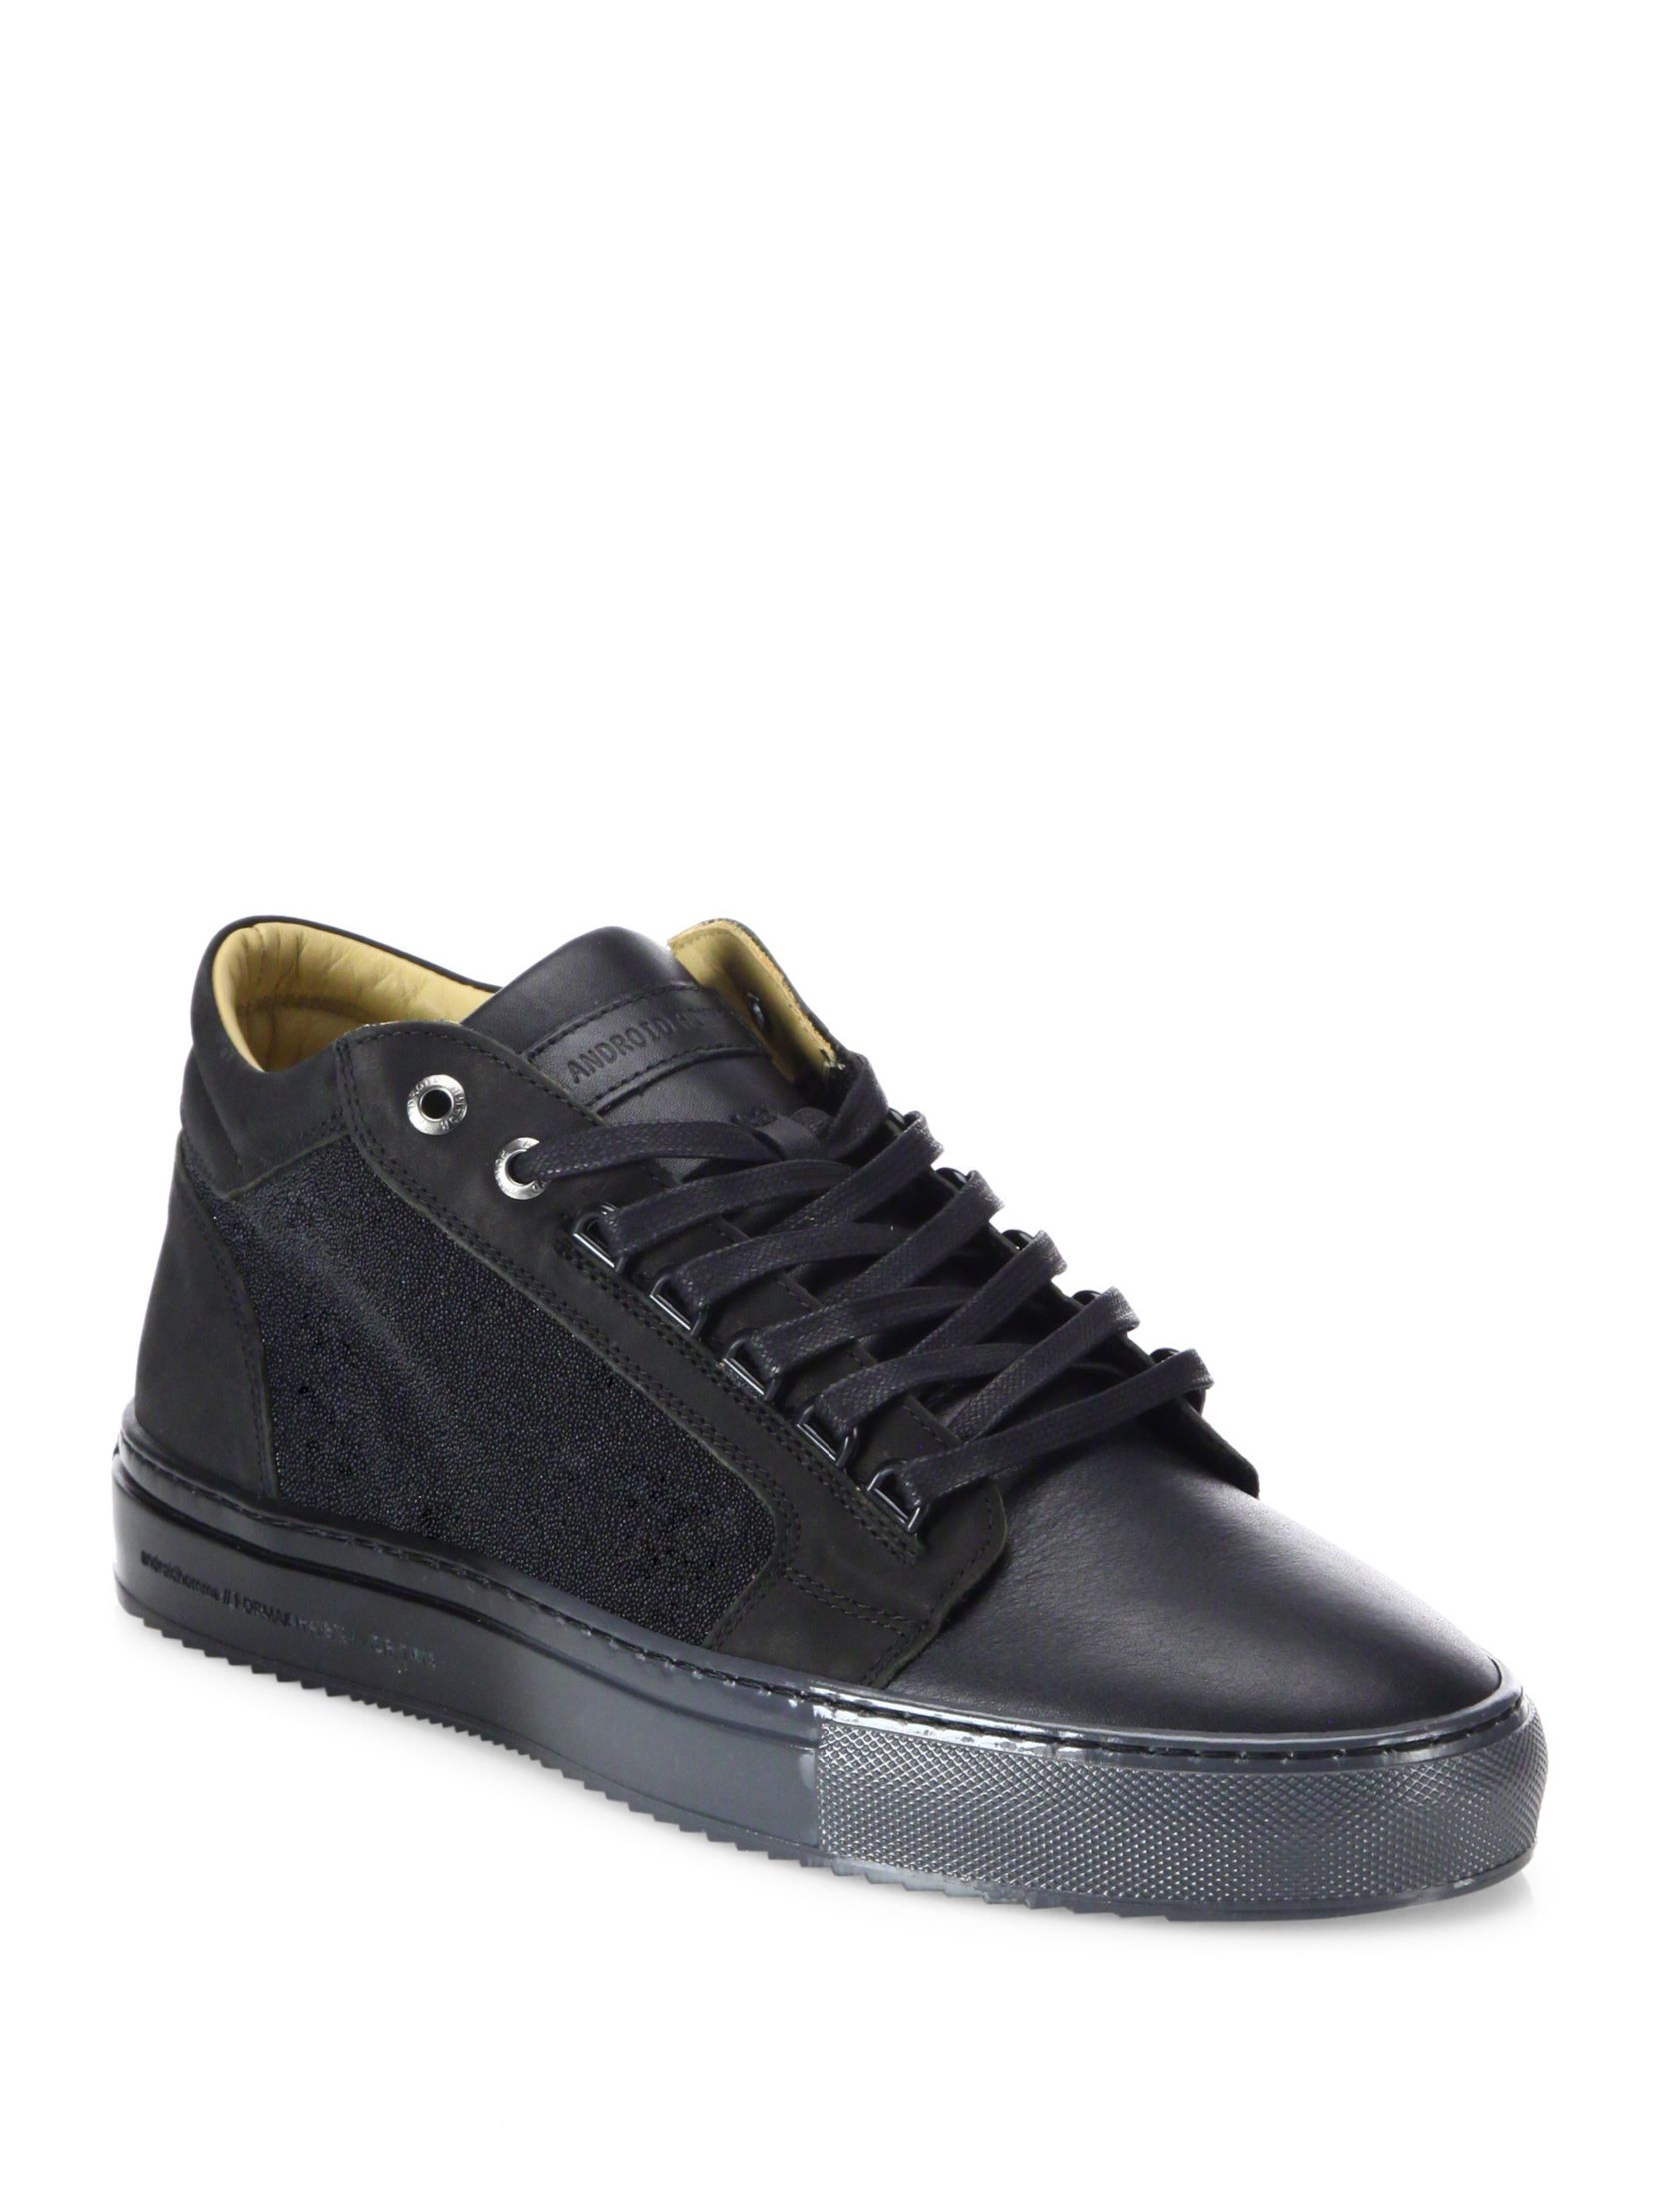 Homme SneakersShoes Top Android Nubuck Caviar Margom Mid KJc13uTFl